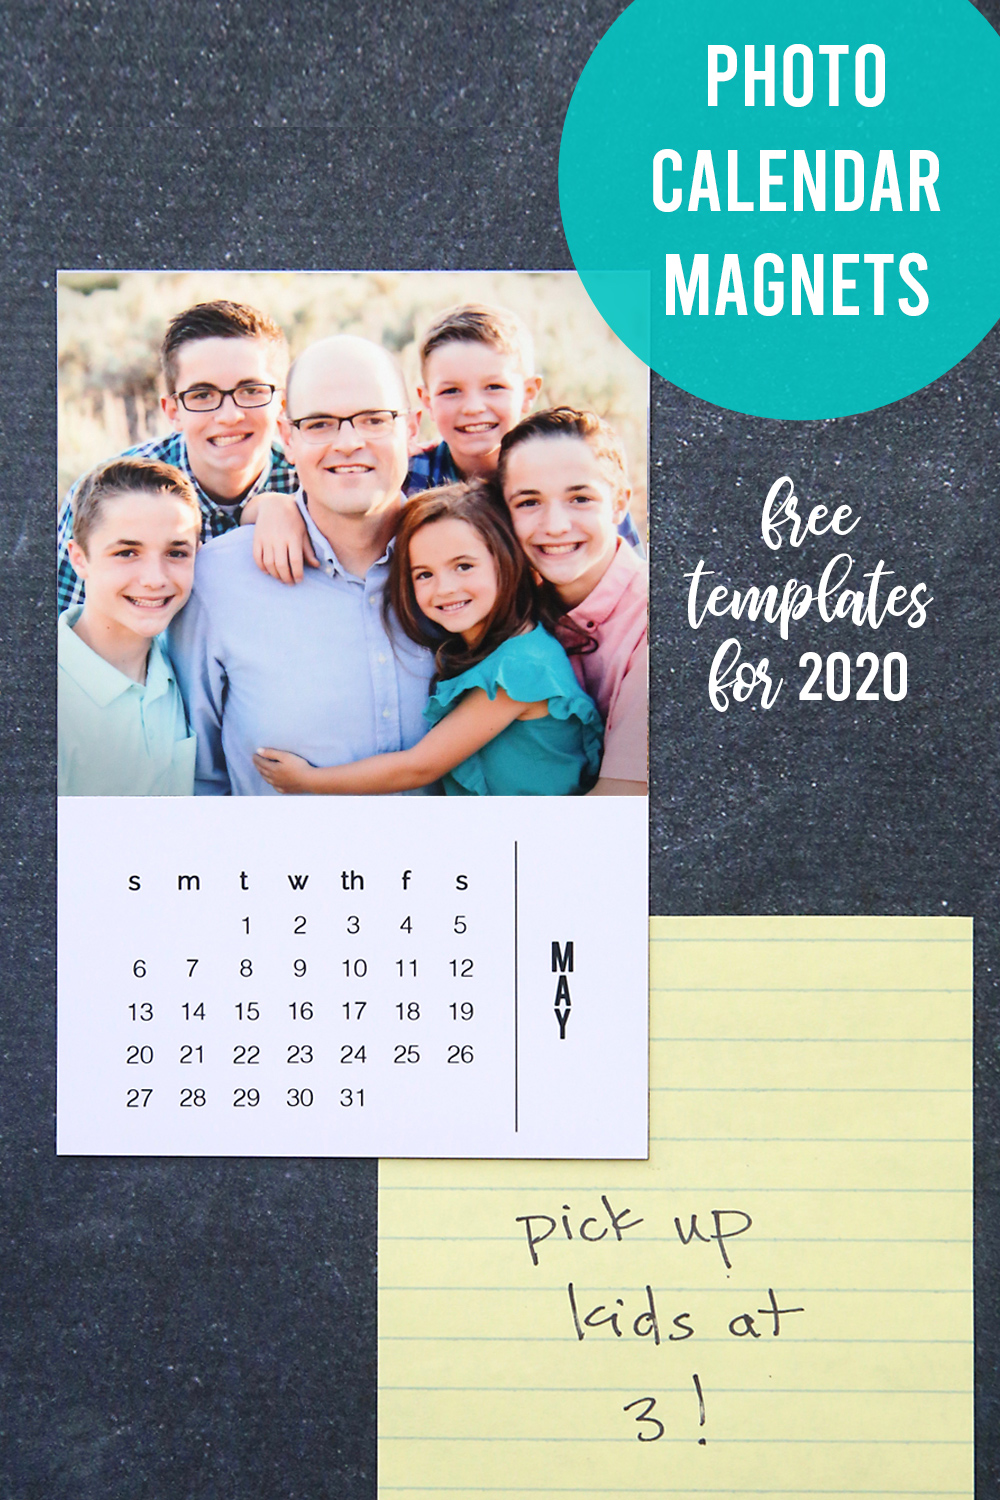 DIY 2020 photo calendar magnets with easy to use templates